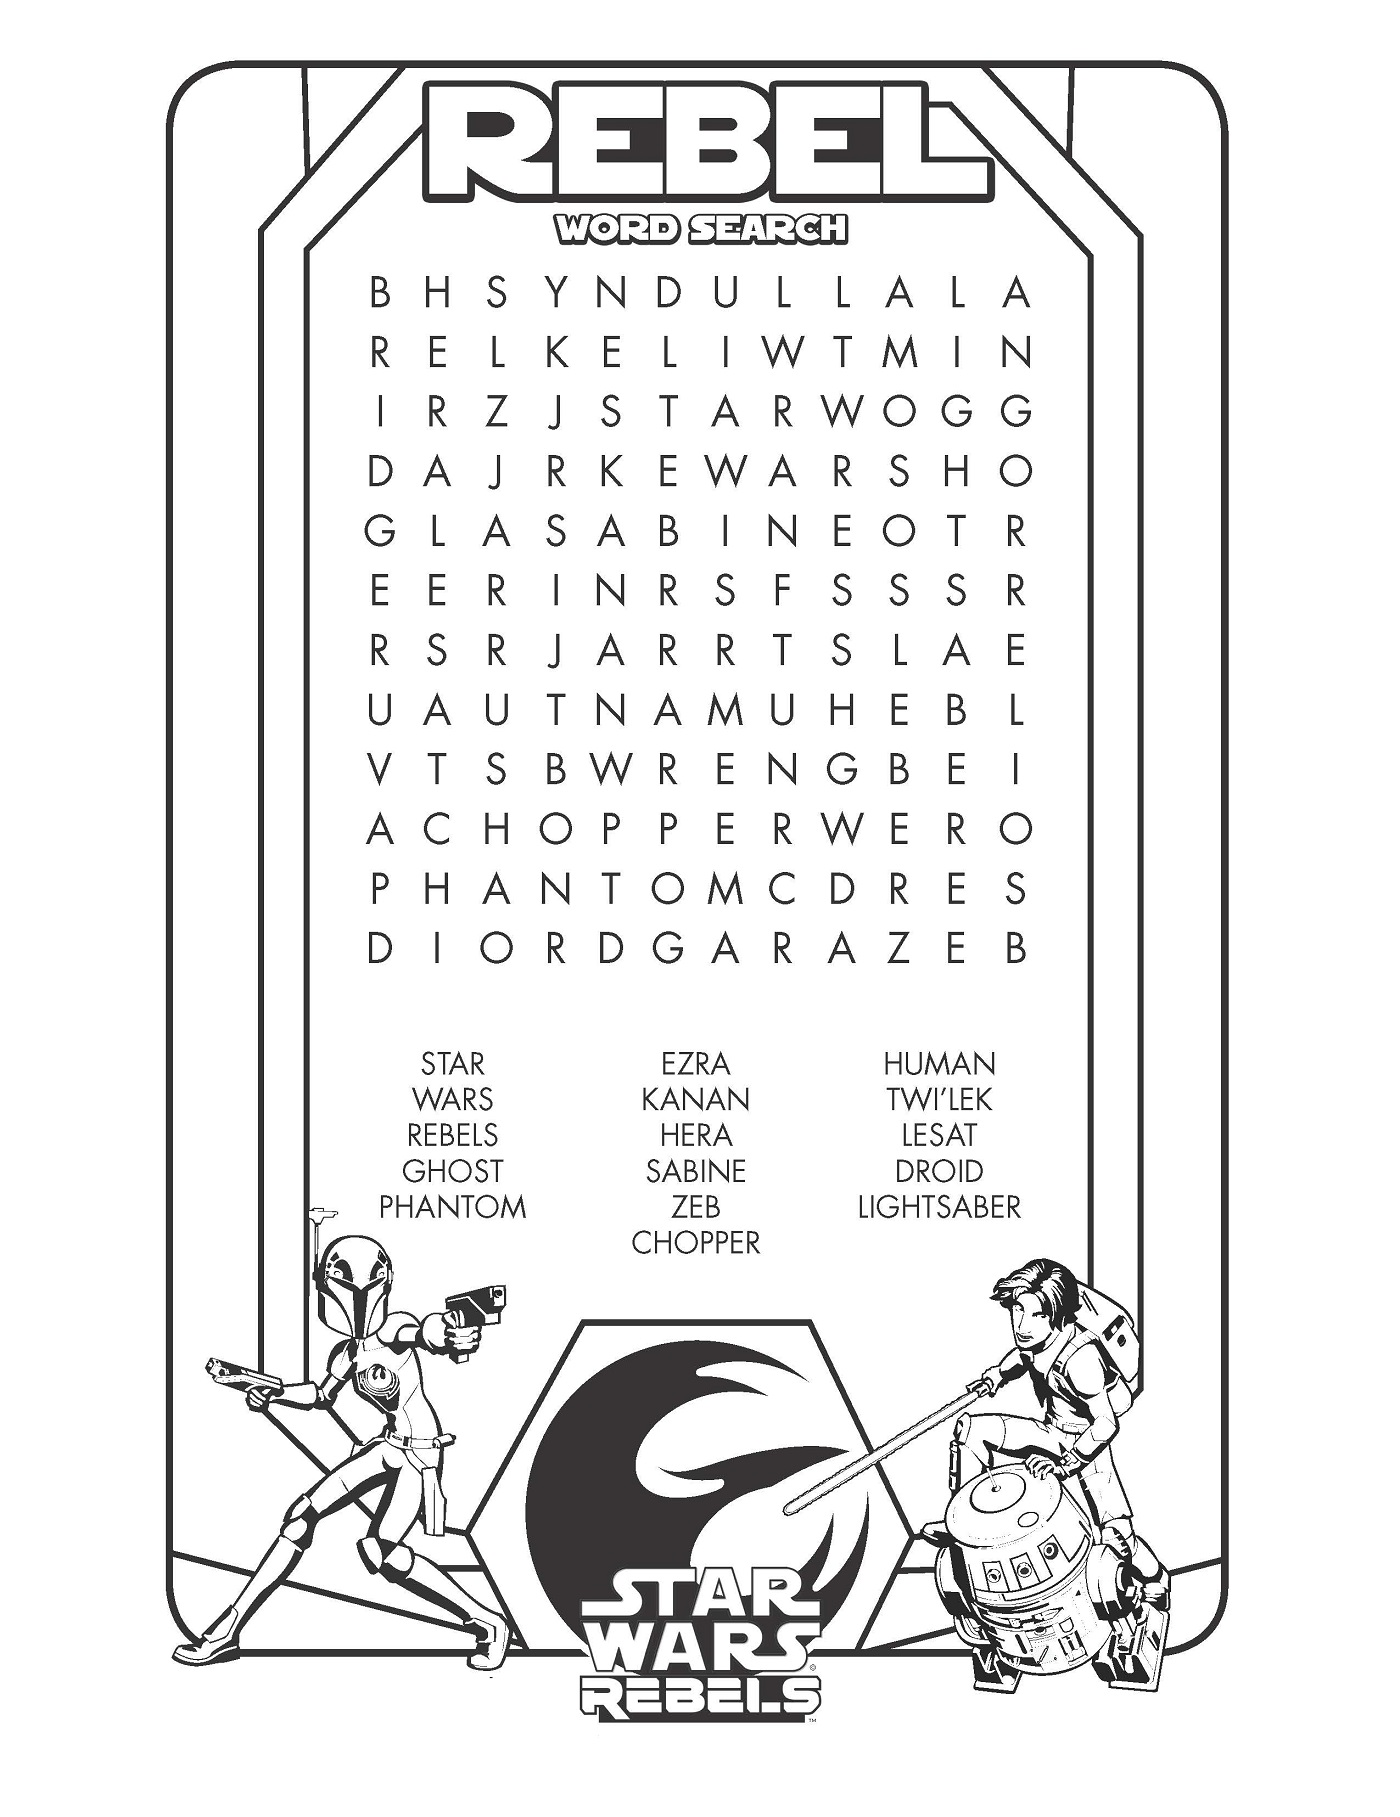 star wars word search fun